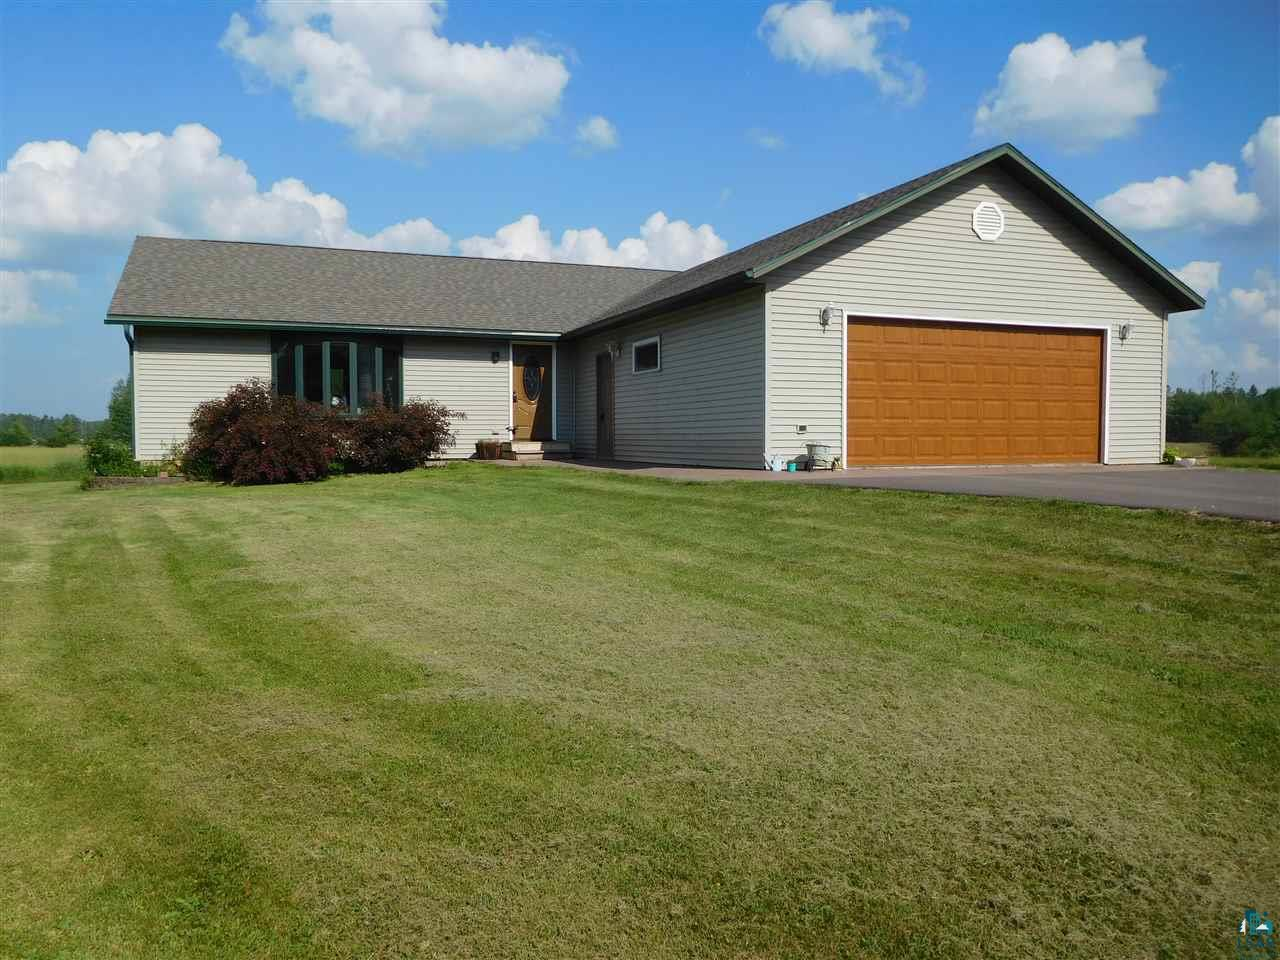 Four bed, three full bath, two-car garage country Ranch home within ten minutes of Ashland and the beaches of Lake Superior! Enjoy main level living and a completely finished basement that includes a bedroom suite, full-bath, bar and living space for fun and recreation. The main level contains a master bedroom with attached full-bath, soaking tub and walk-in closet, two more bedrooms, living room, kitchen and dining room with sliding doors that lead to the deck, a laundry room and mud room.  The deck offers beautiful sweeping views of your five acre yard and the surrounding countryside. Two sheds are conveniently located next to a large fenced-in garden area. New roof in 2017, new drive-way in 2018, new carpet in bedrooms, new flooring in laundry room, heated attached garage and new garage door are a few of the updates.  Move right in and enjoy country living within minutes to the city!